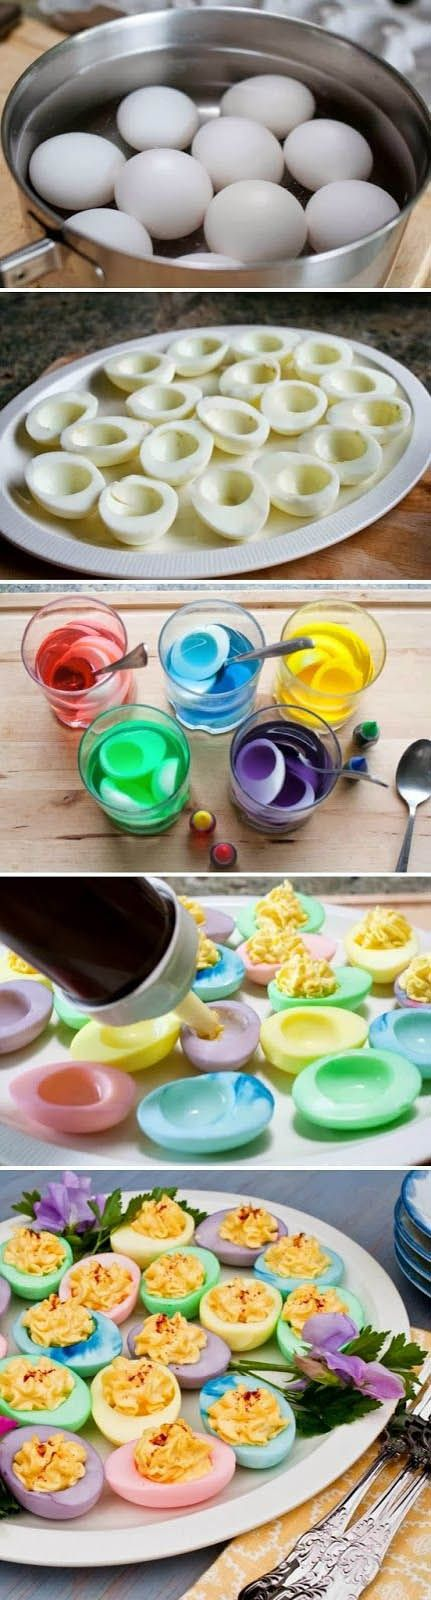 Beautiful Eggs | DIY & Crafts Tutorials